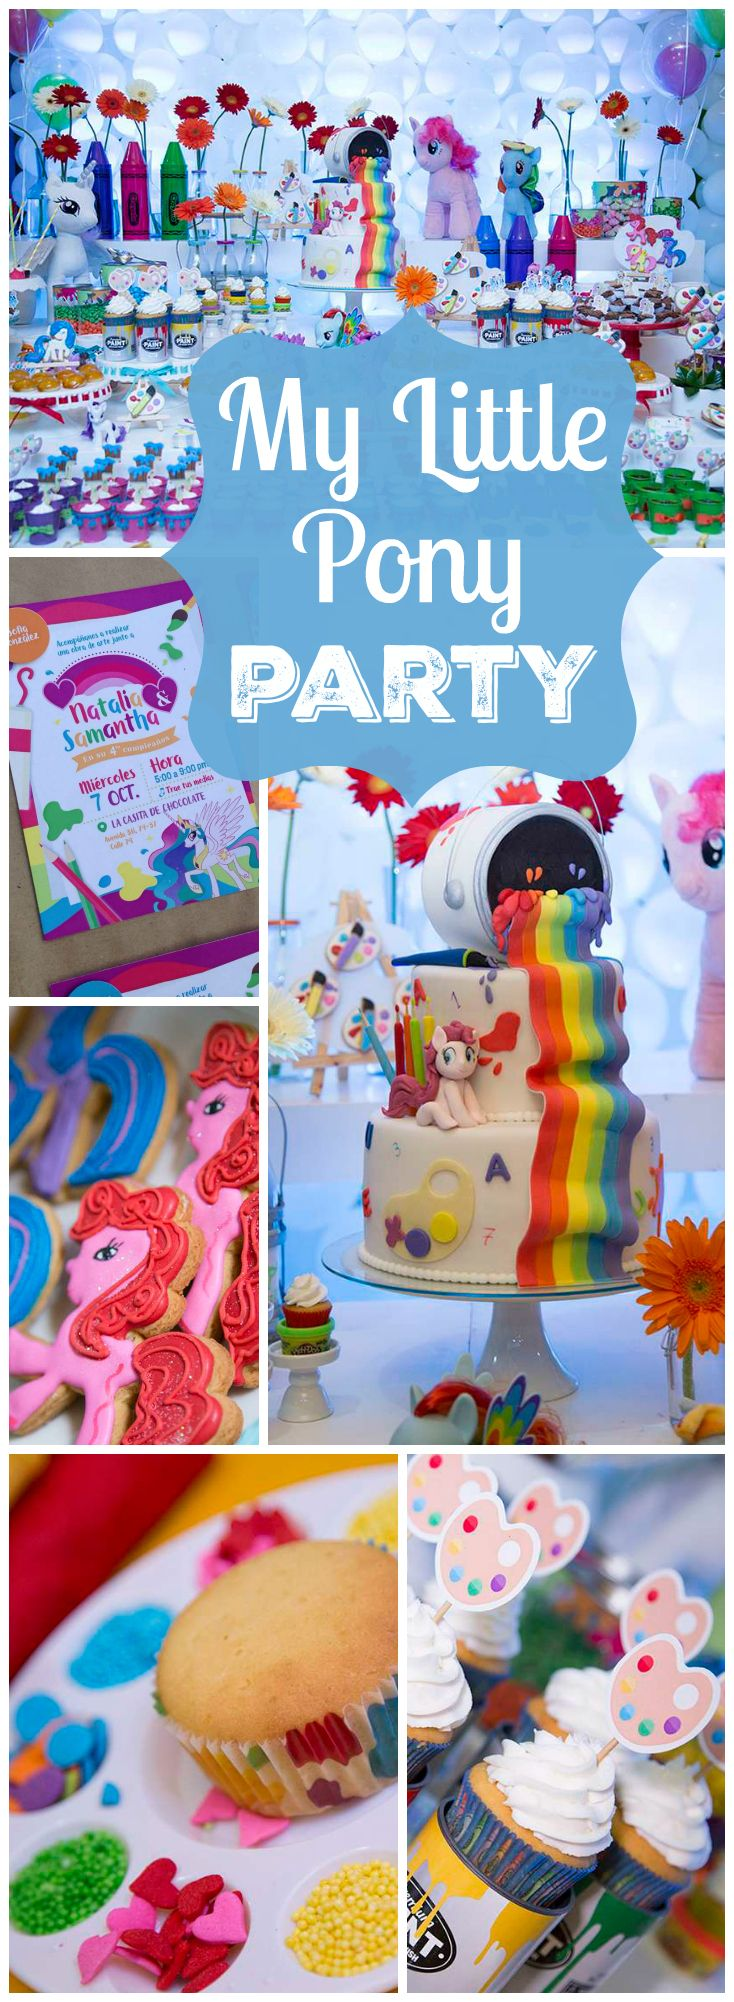 My little pony birthday party crafts - Arts Crafts My Little Pony Birthday Samantha And Natalia S My Little Pony Art Party